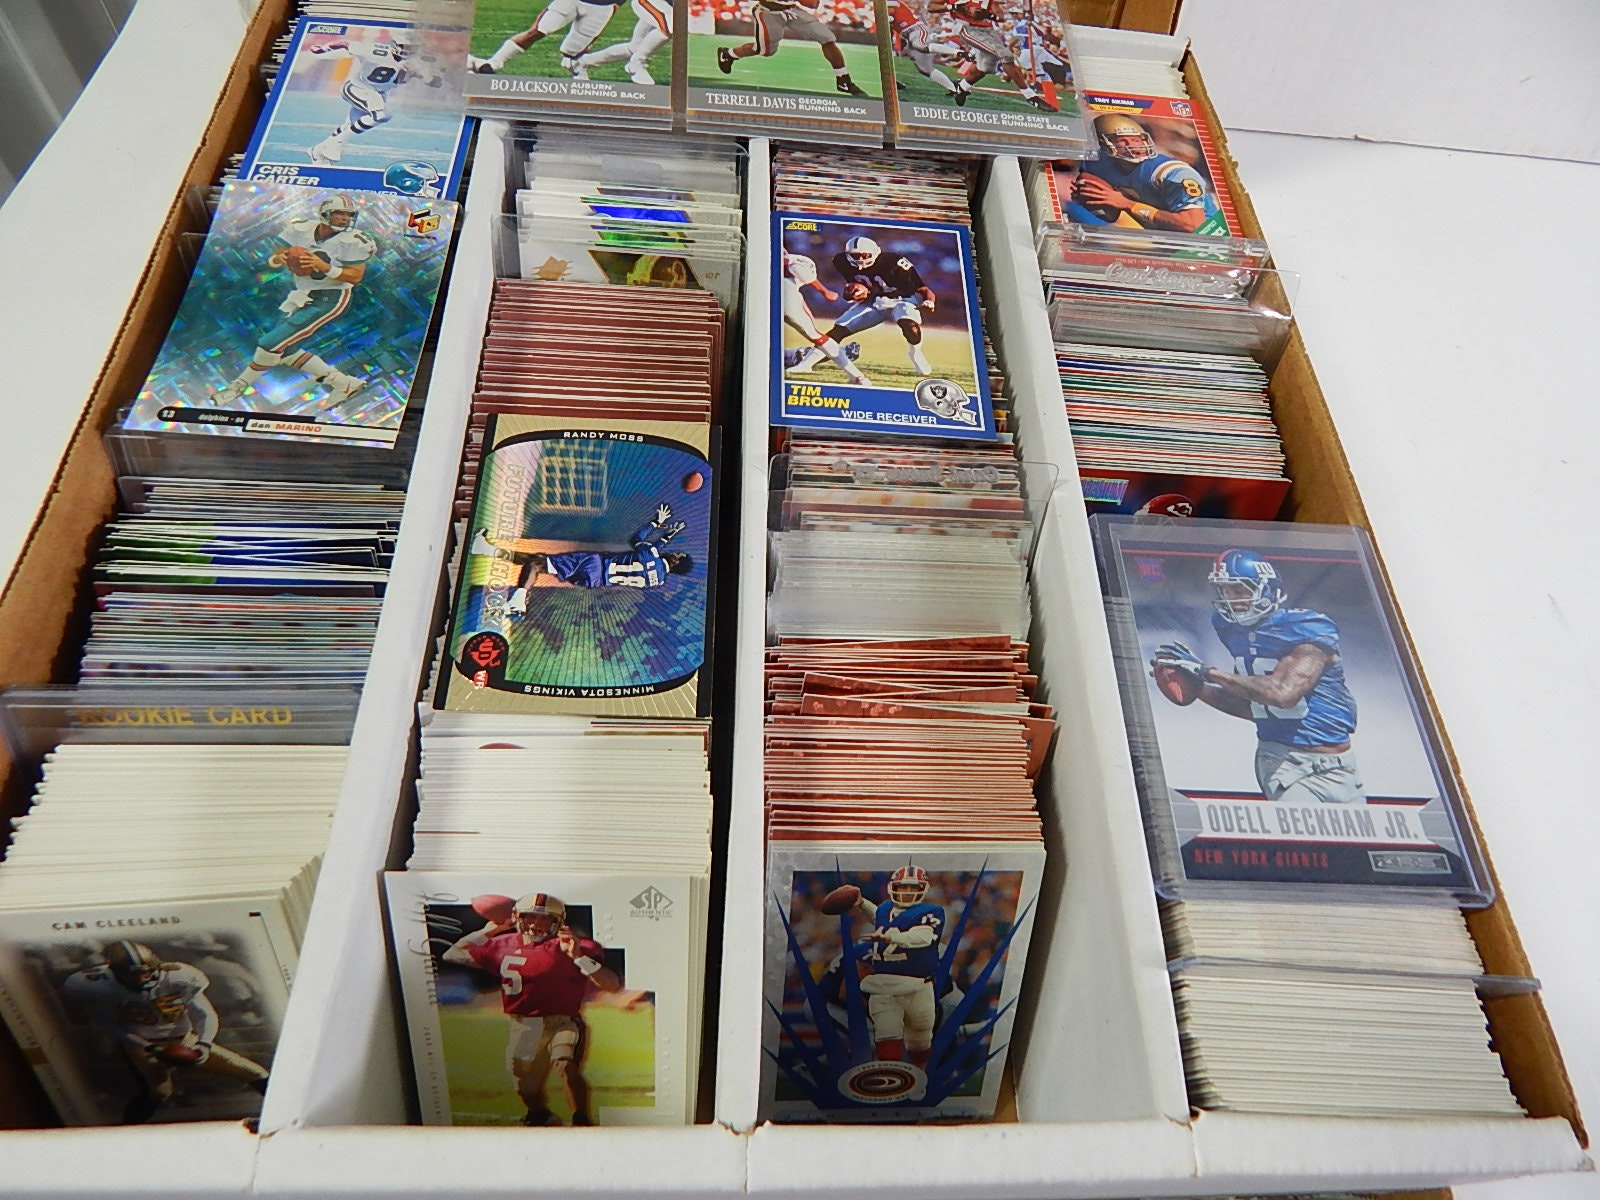 3200 Count Box of Football Cards with Stars, HOF - 2500 Card Count